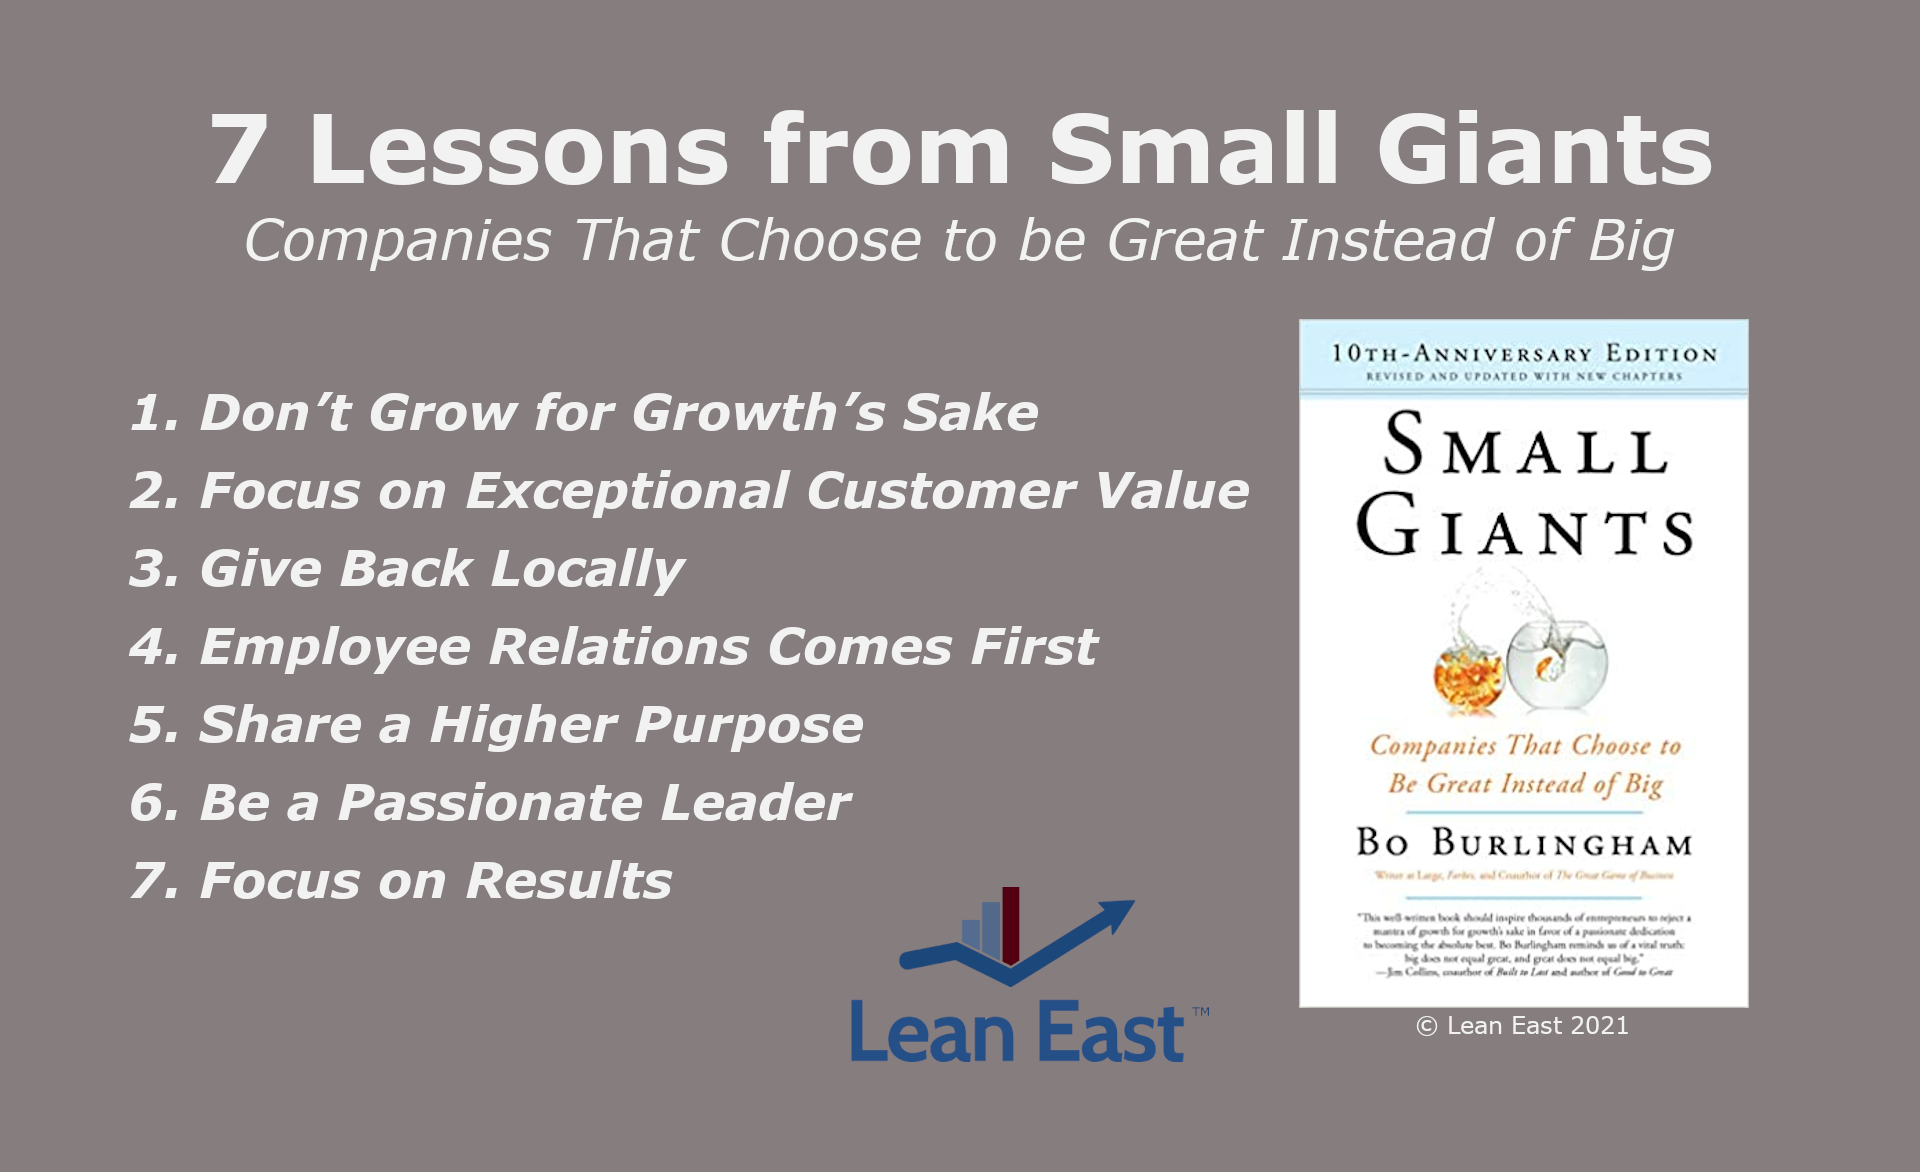 7 Lessons from Small Giants